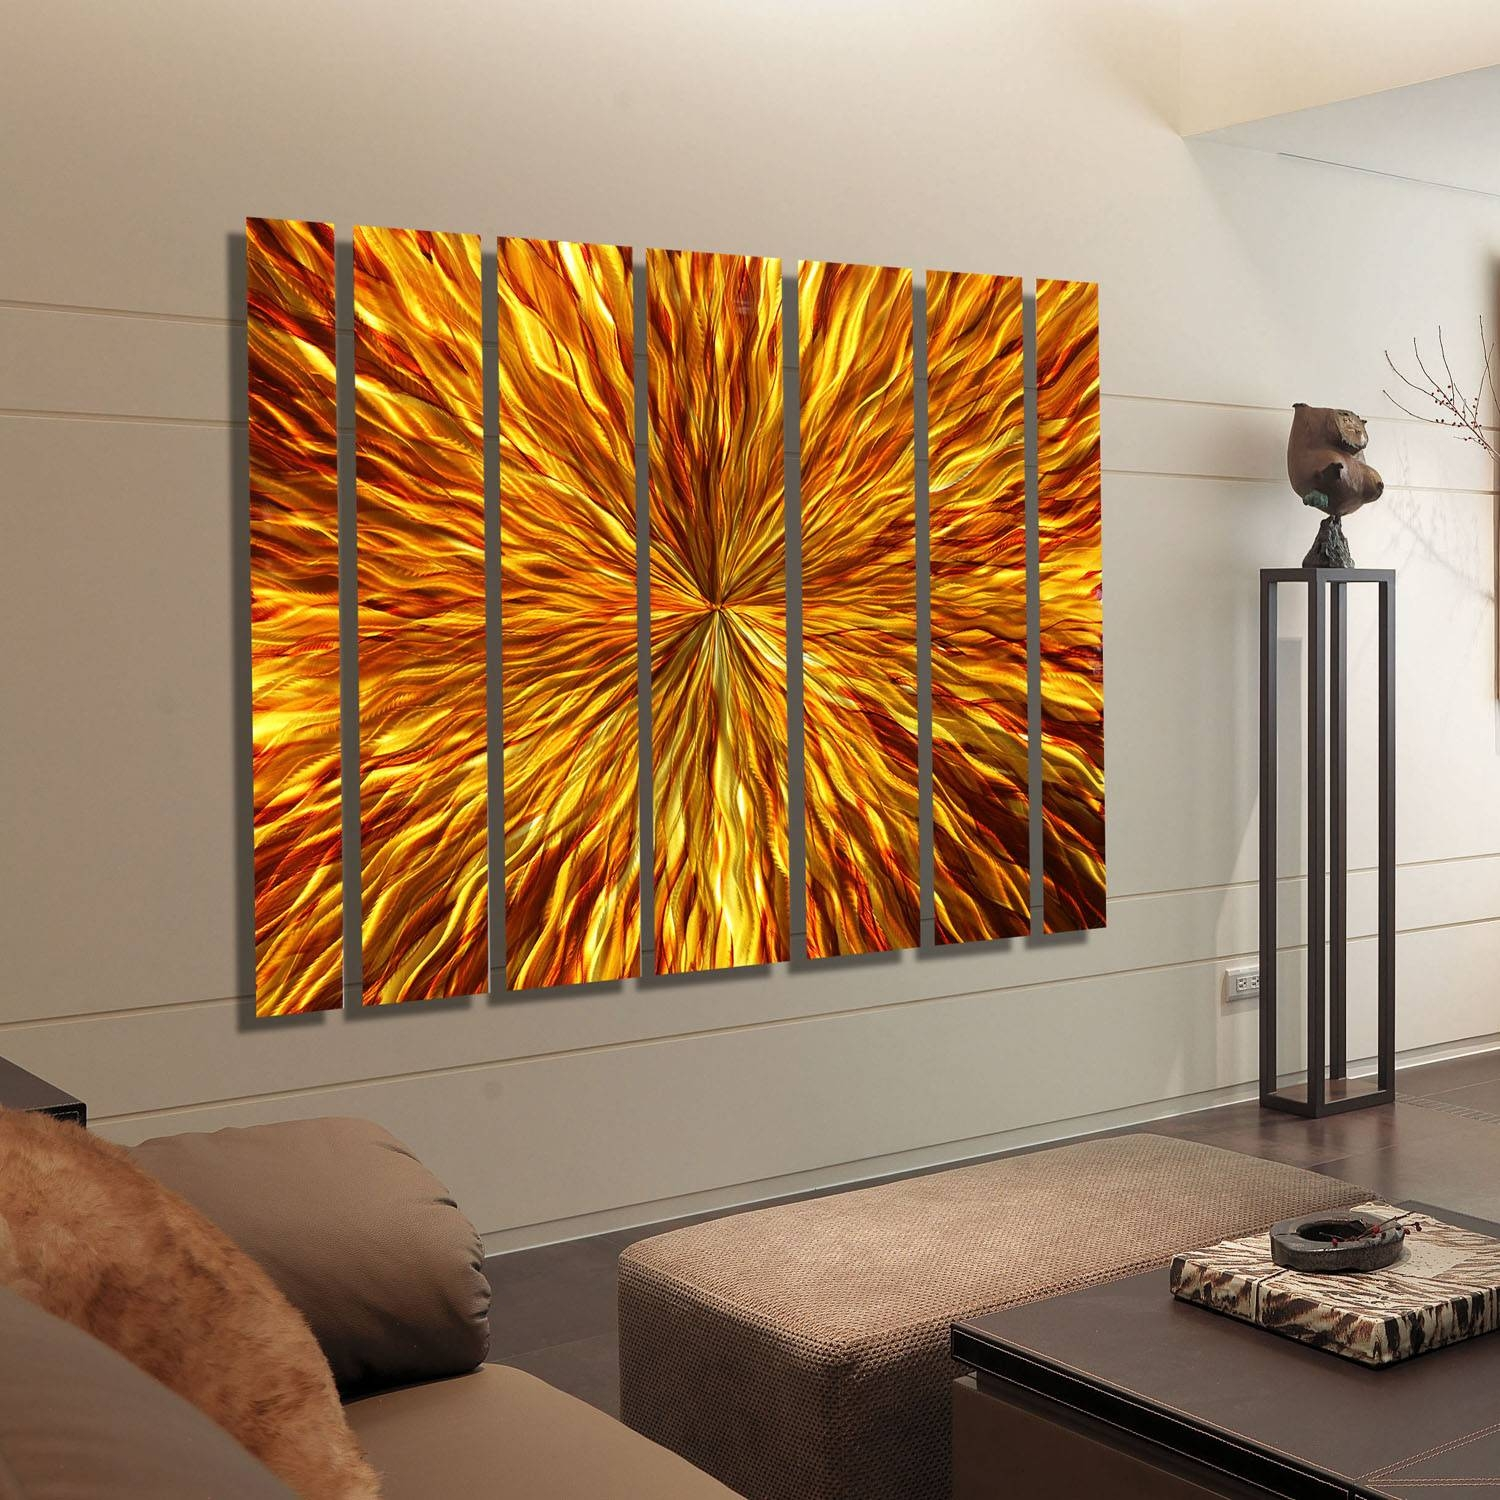 Oversized Modern Wall Art 20 Photos Large Abstract Metal Wall Art